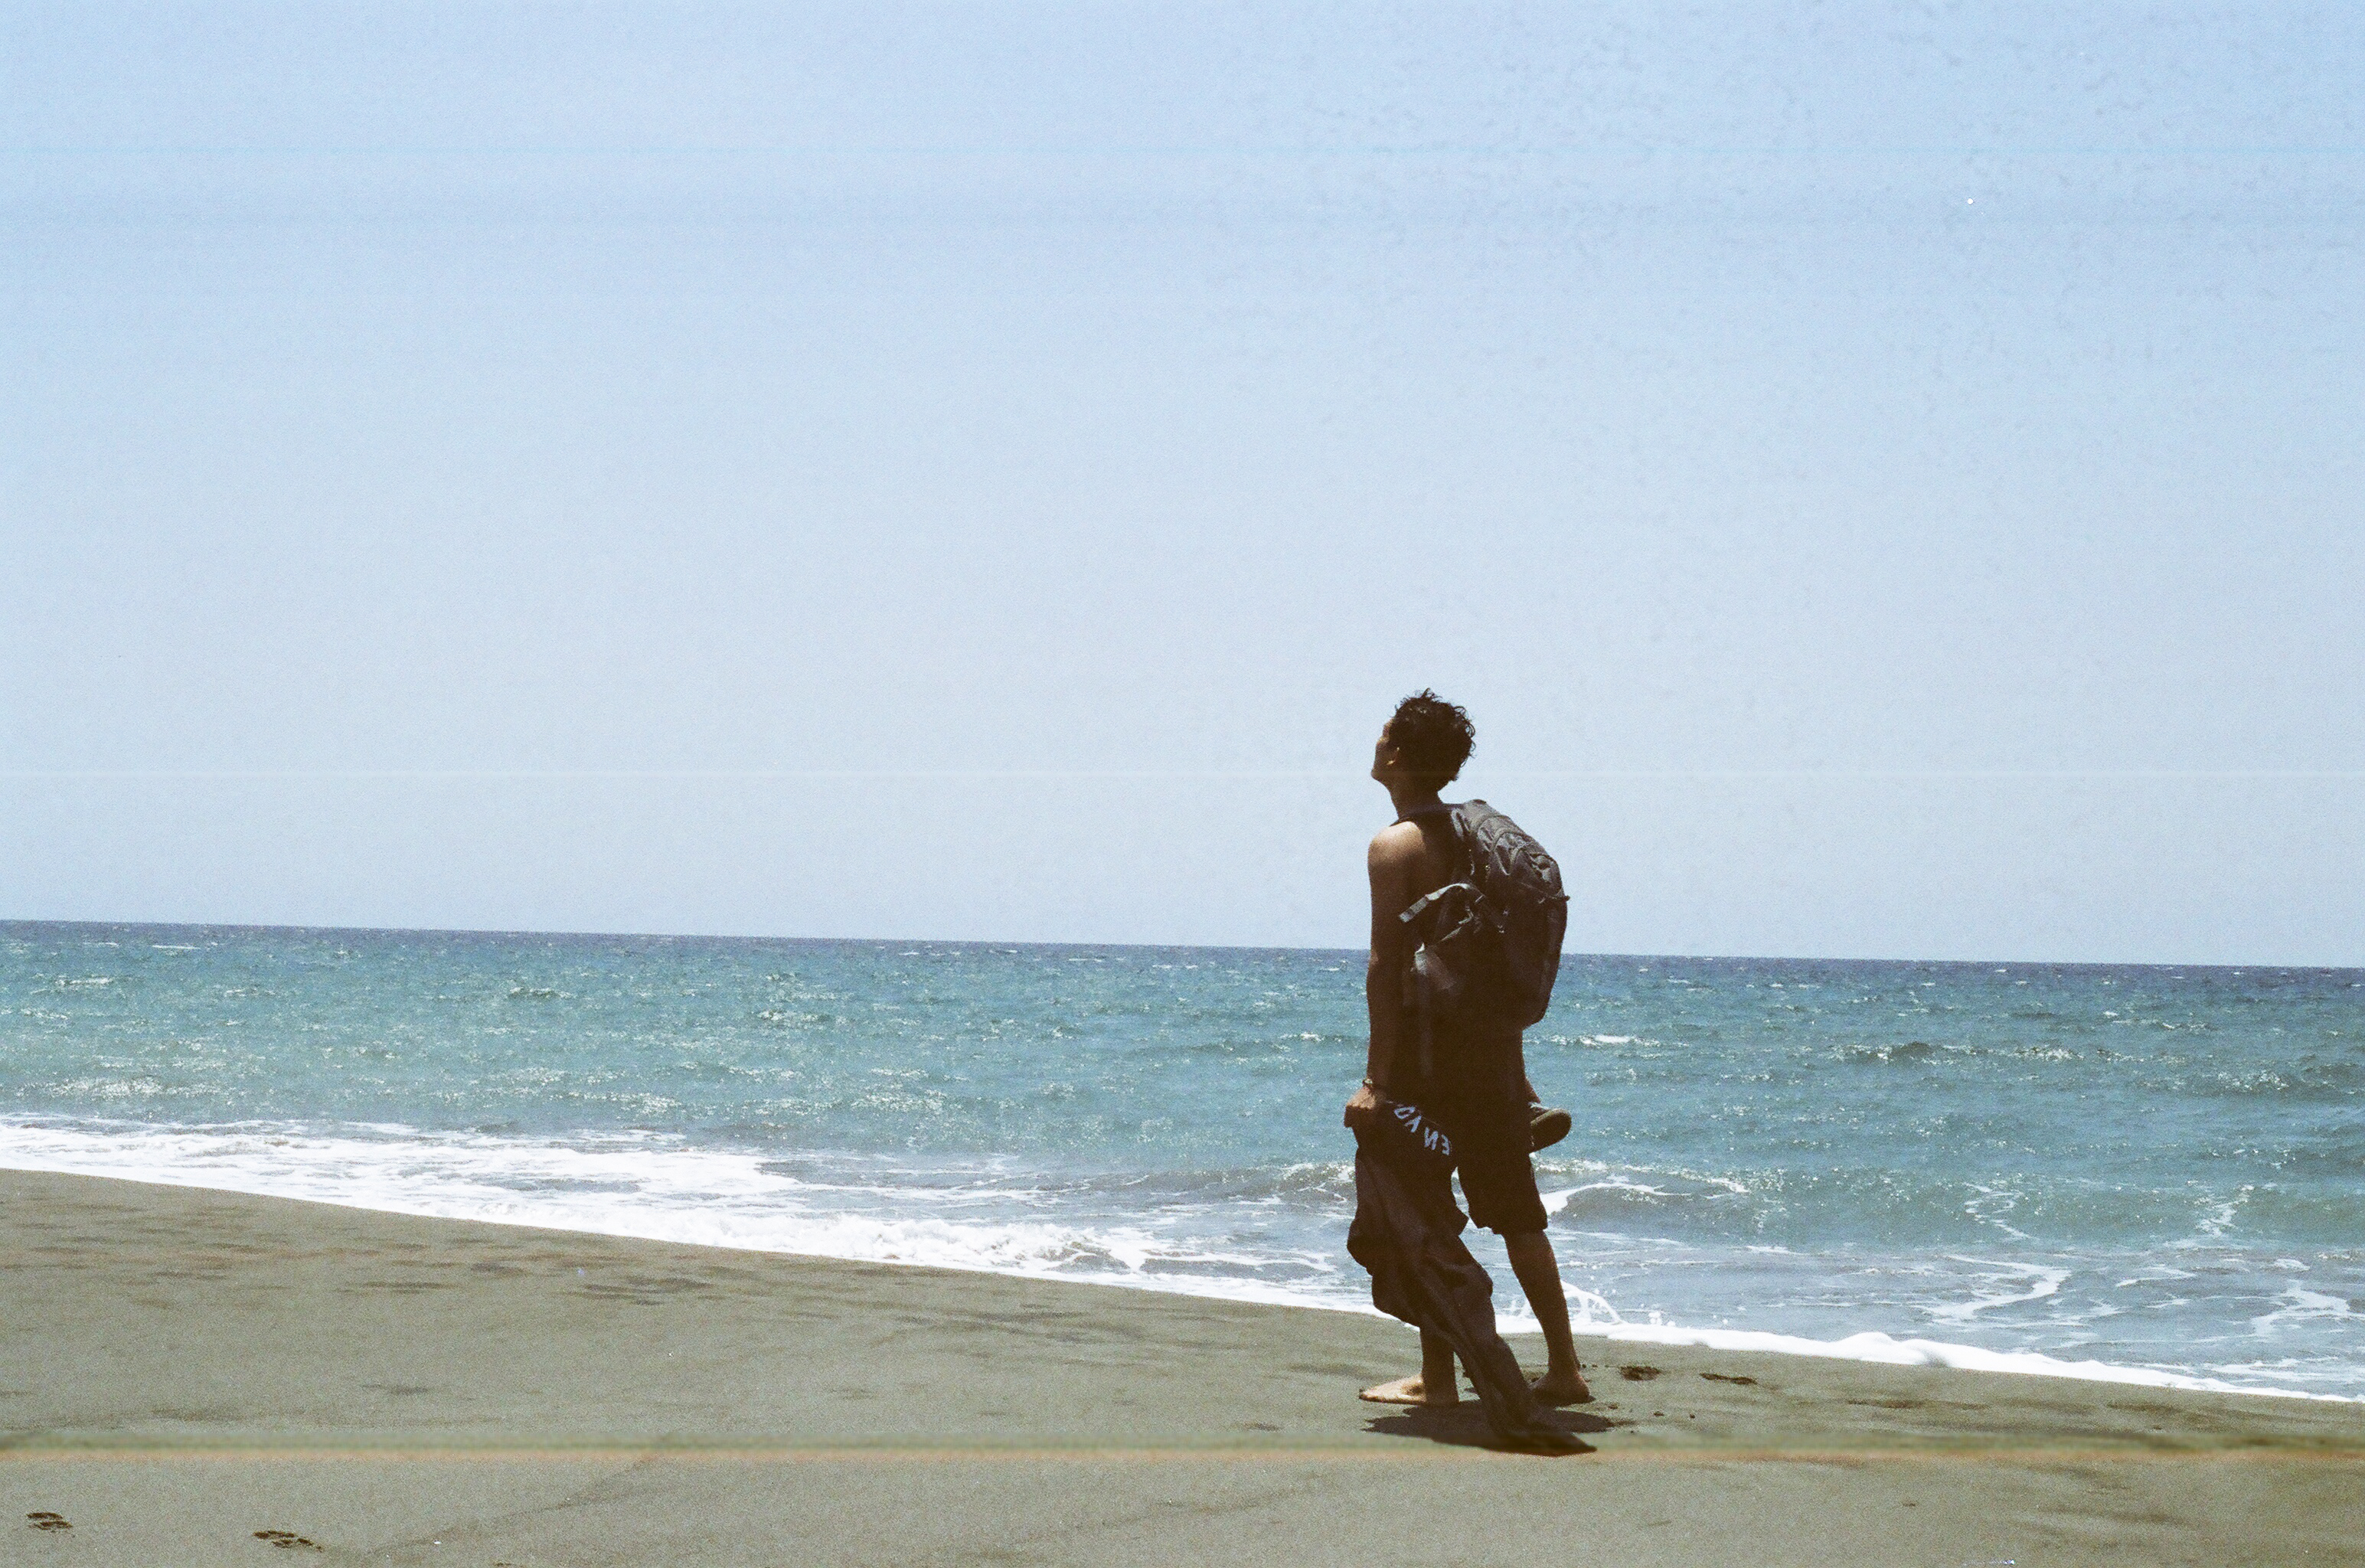 Chad in Playa de Oro beach photo by me